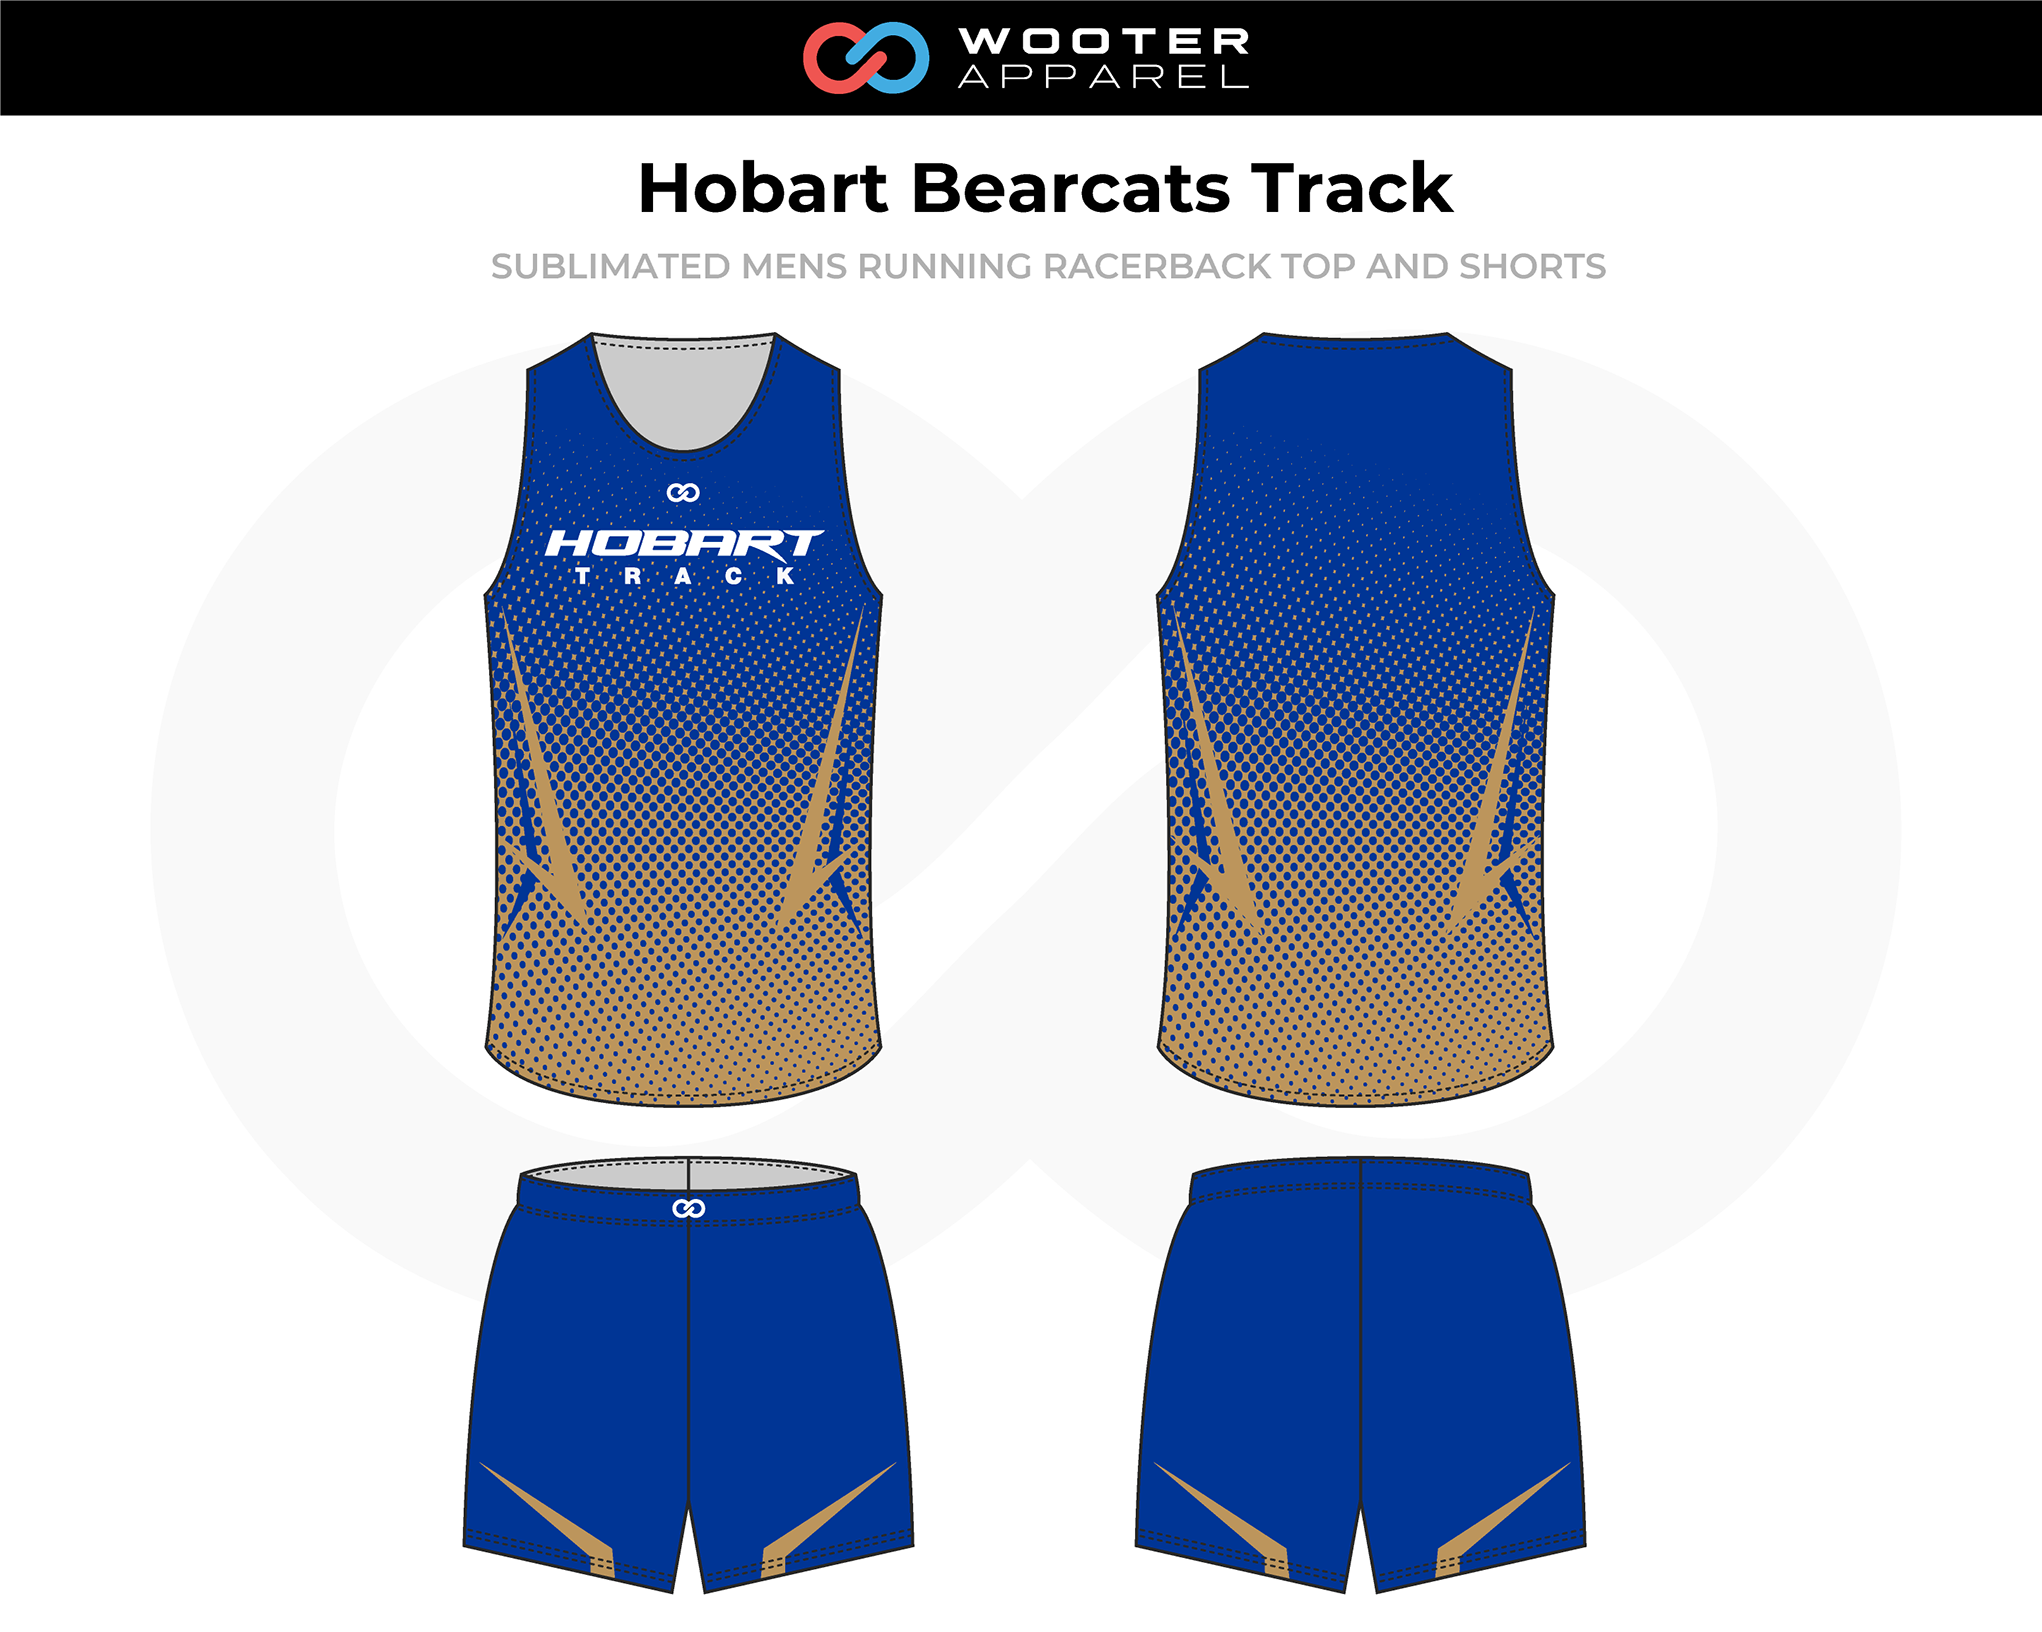 HOBART BEARCATS Blue Beige White Men's Track Running Jerseys, and Shorts